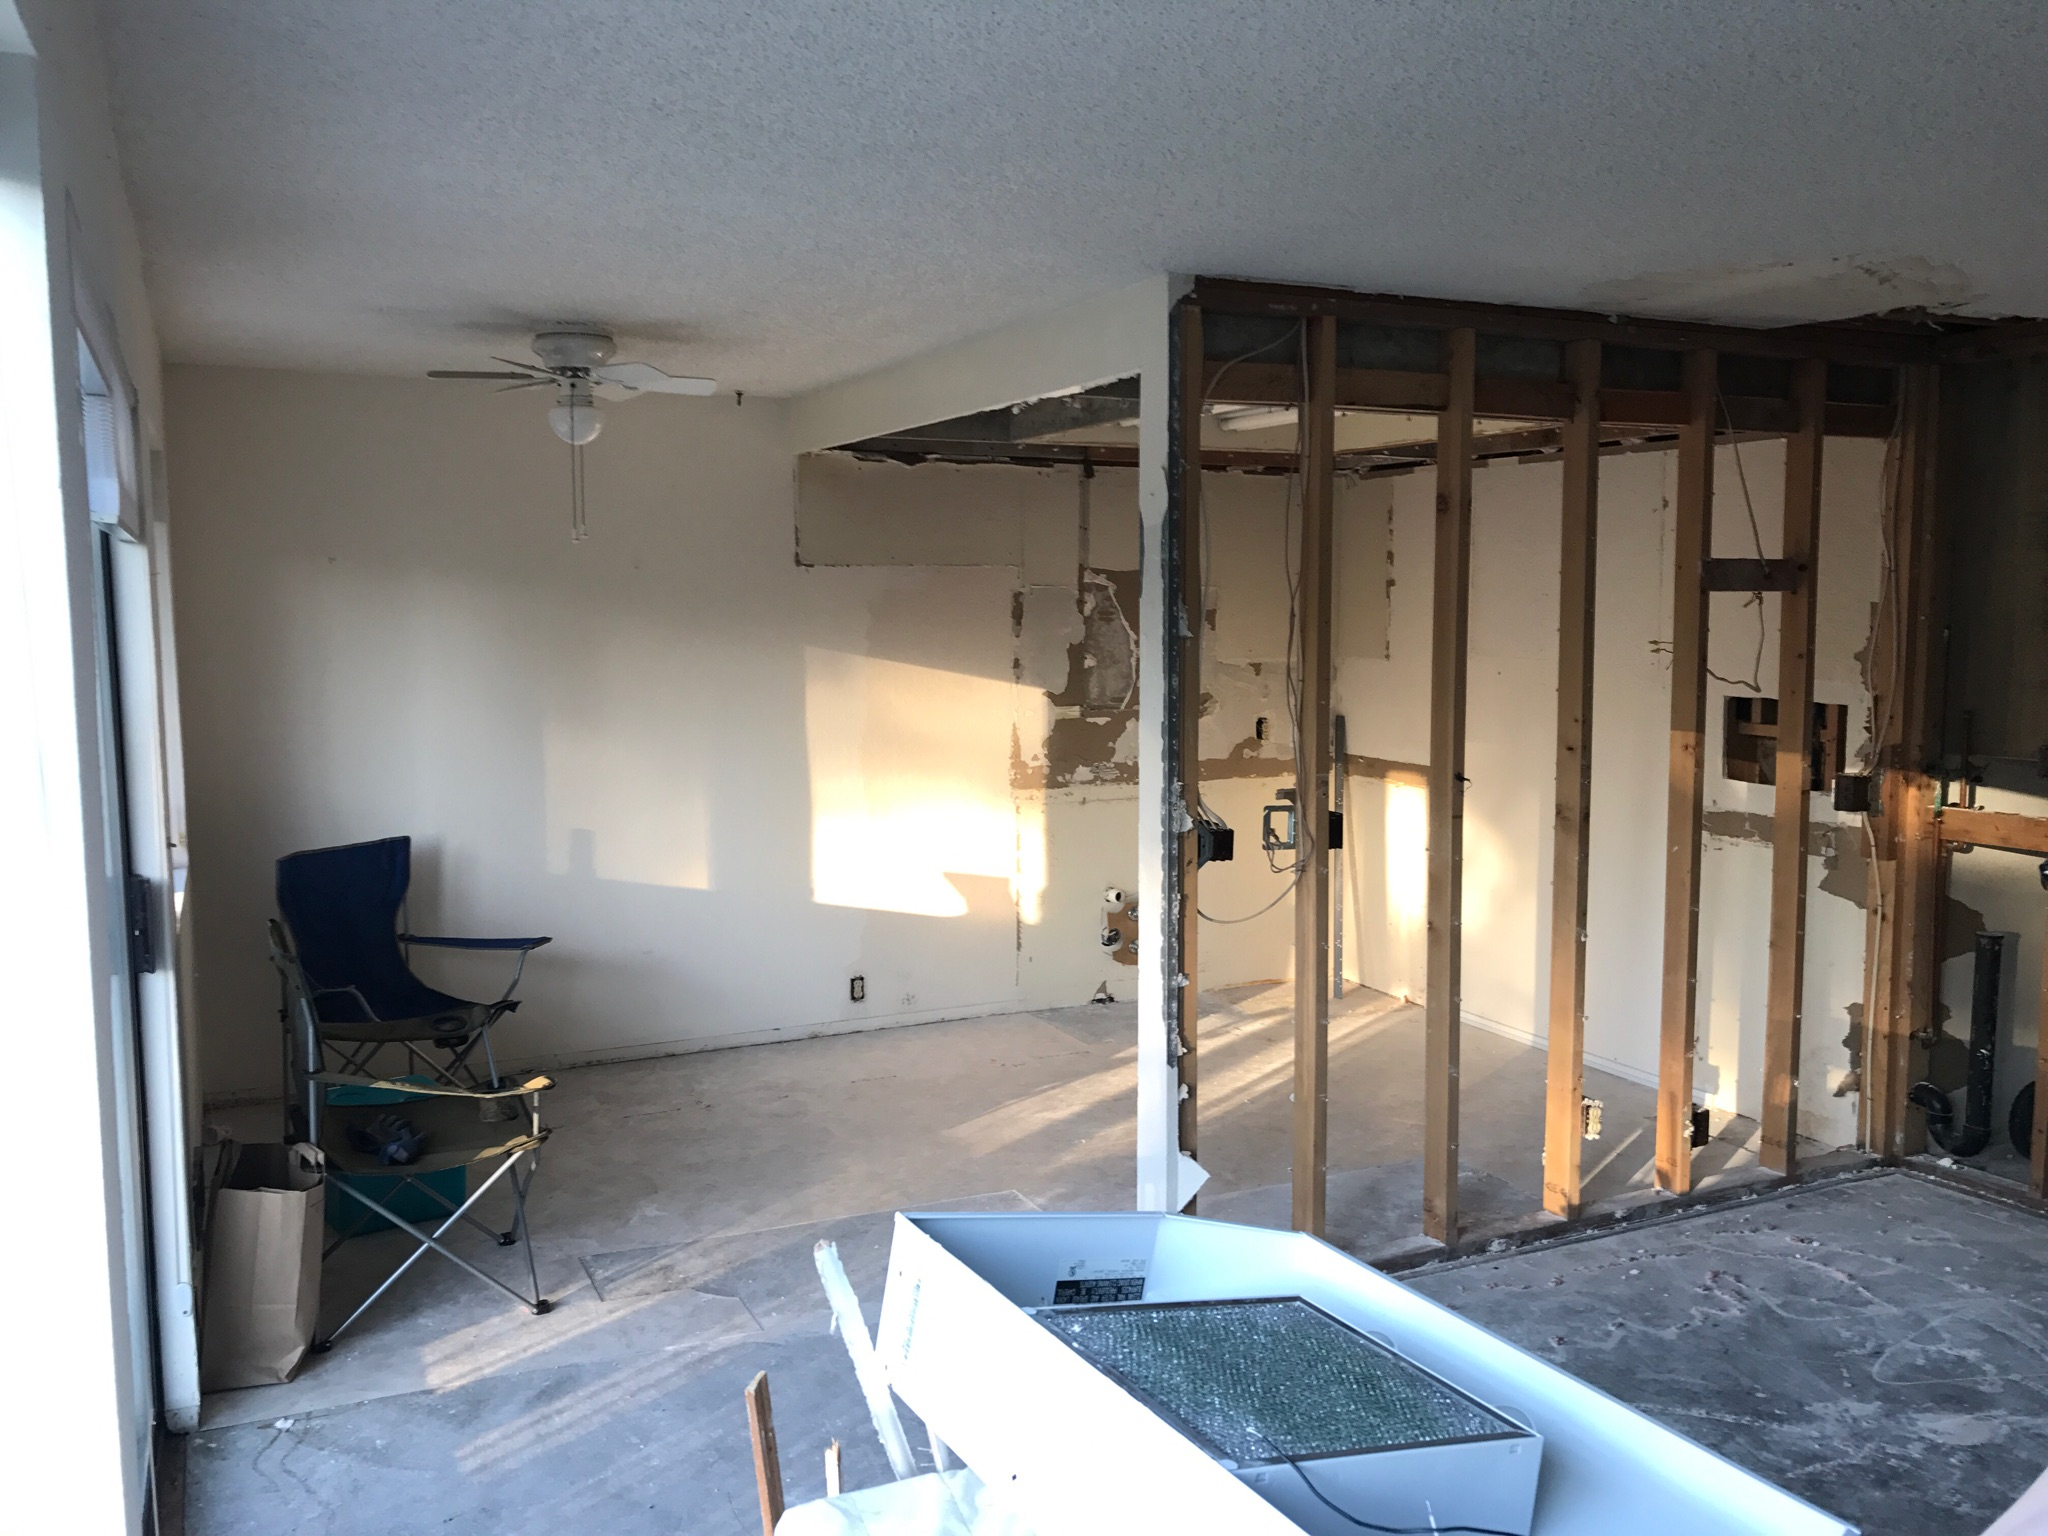 Unfinished interior project in need of drywall repair and installation